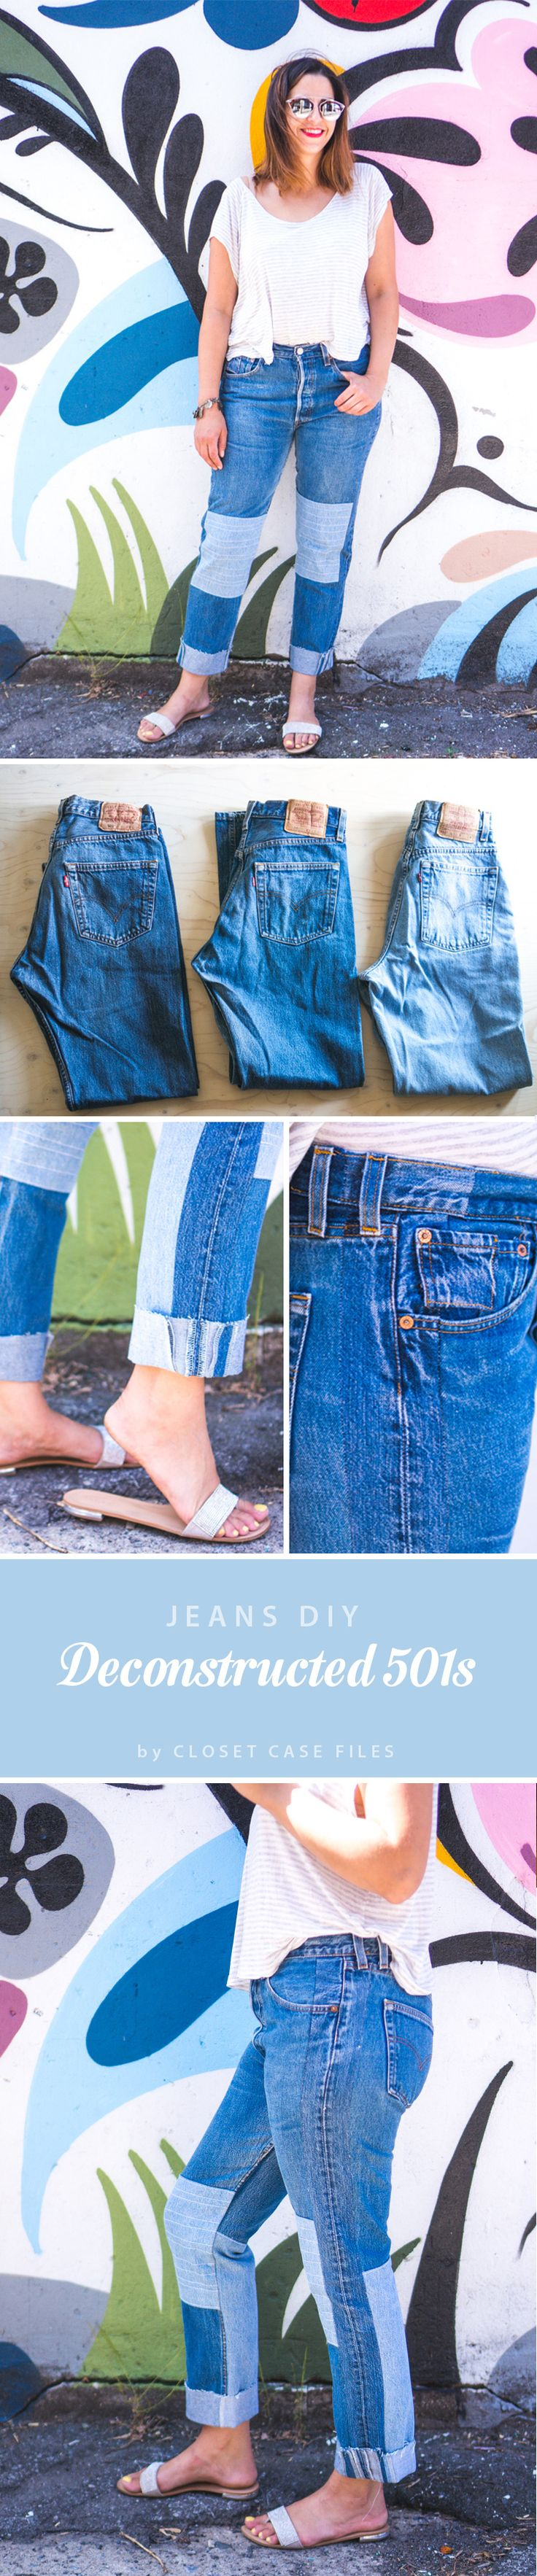 Deconstructed Levi 501s // Jeans refashion http://closetcasefiles.com/refashioners-deconstructedreconstructed-levi-501s/